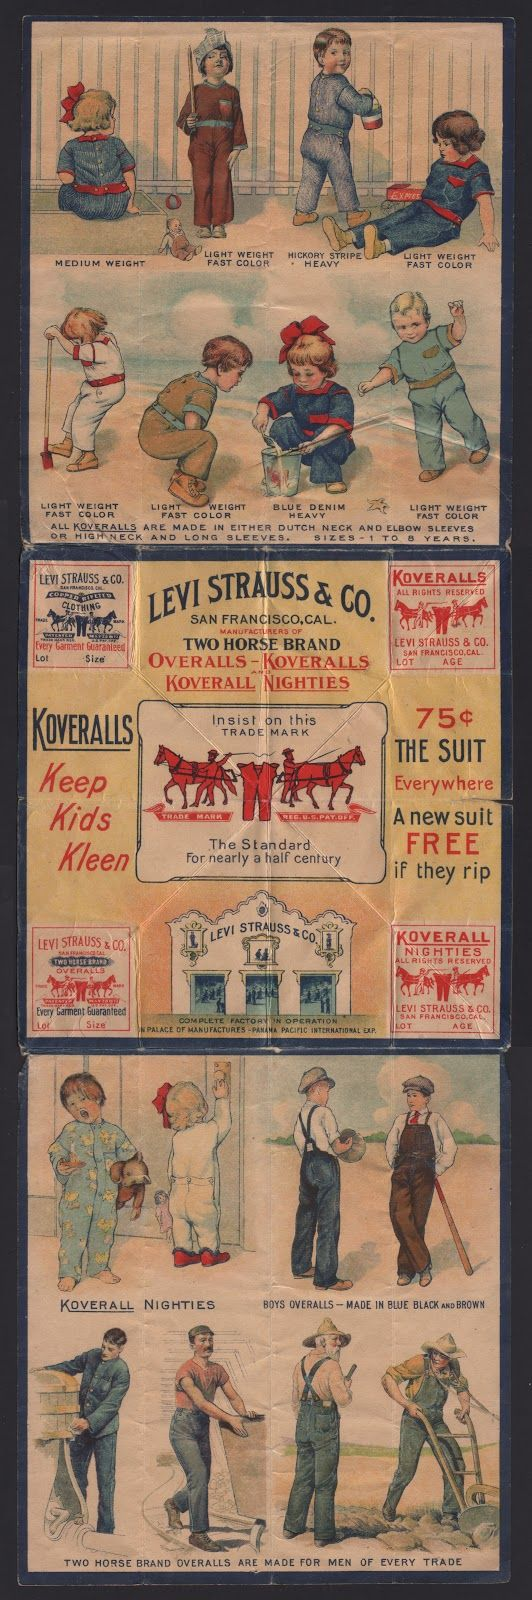 Circa 1915 Levi Strauss & Co. Overalls and Koveralls Advertising Piece